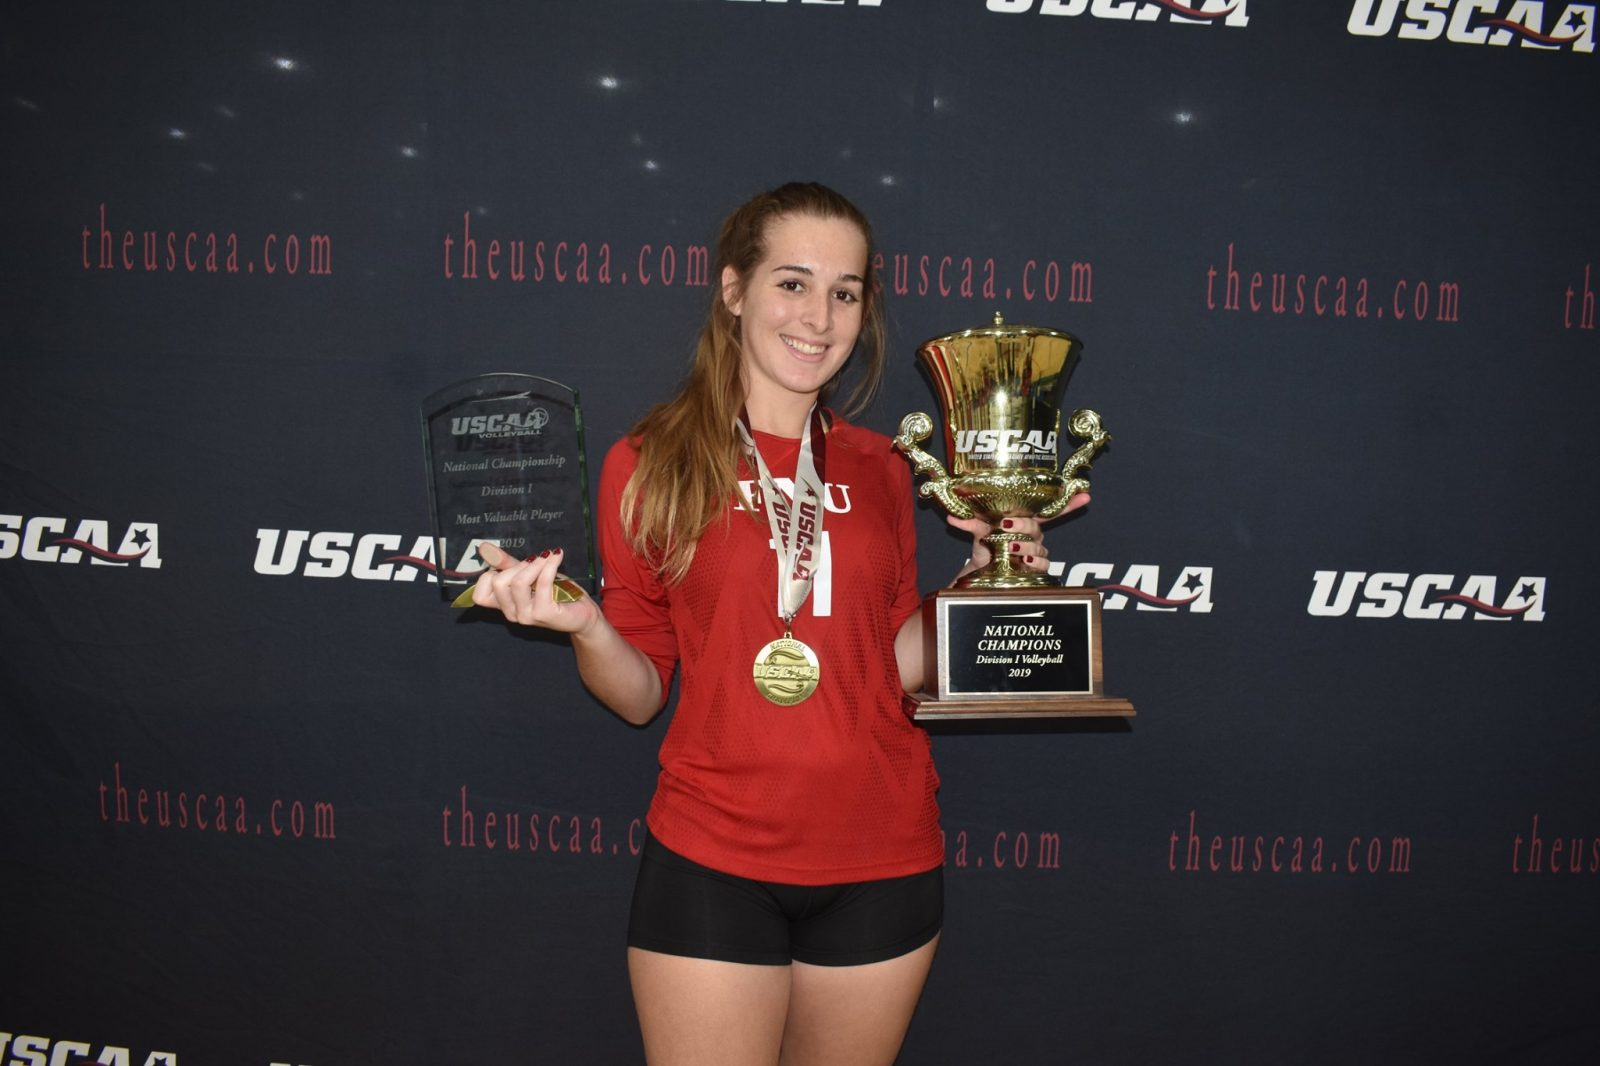 Carolina Dantas Volleyball player with the awards received